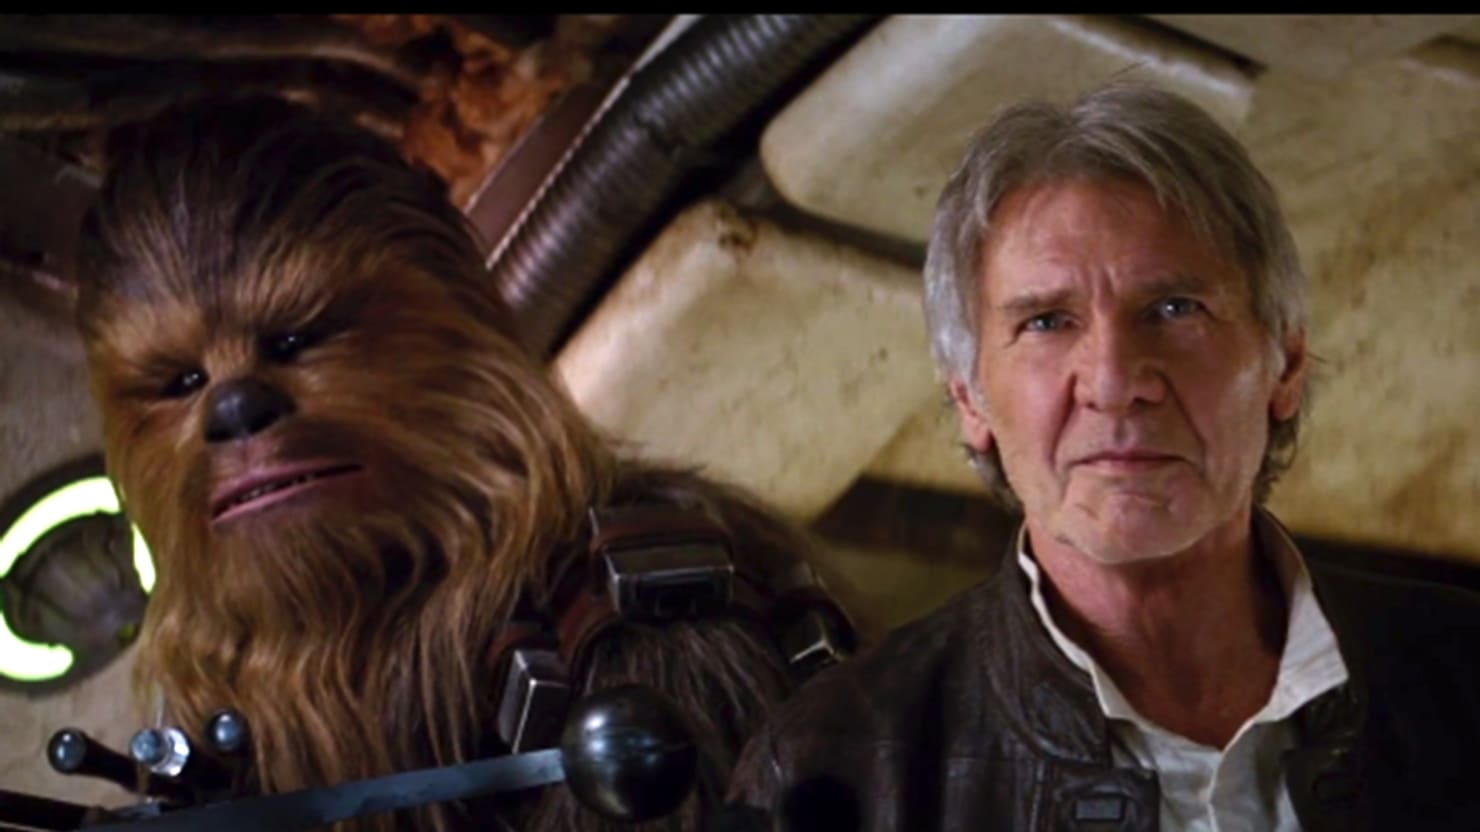 Star Wars Fans: This Is the 'Force Awakens' Trailer You're Looking For